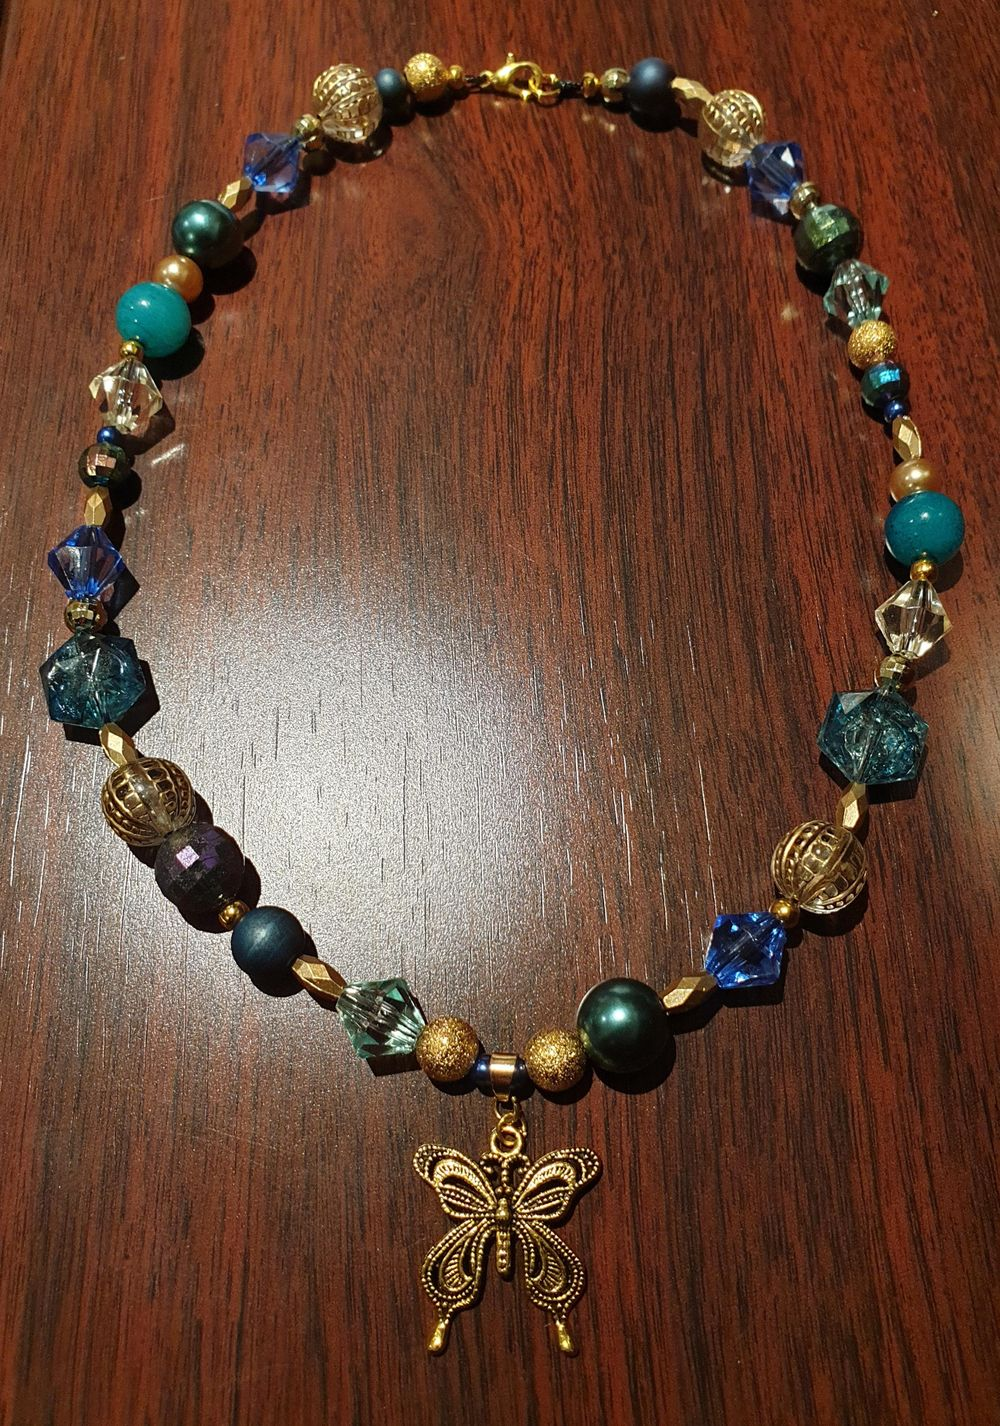 Beaded necklace with butterfly charm - image 1 - student project